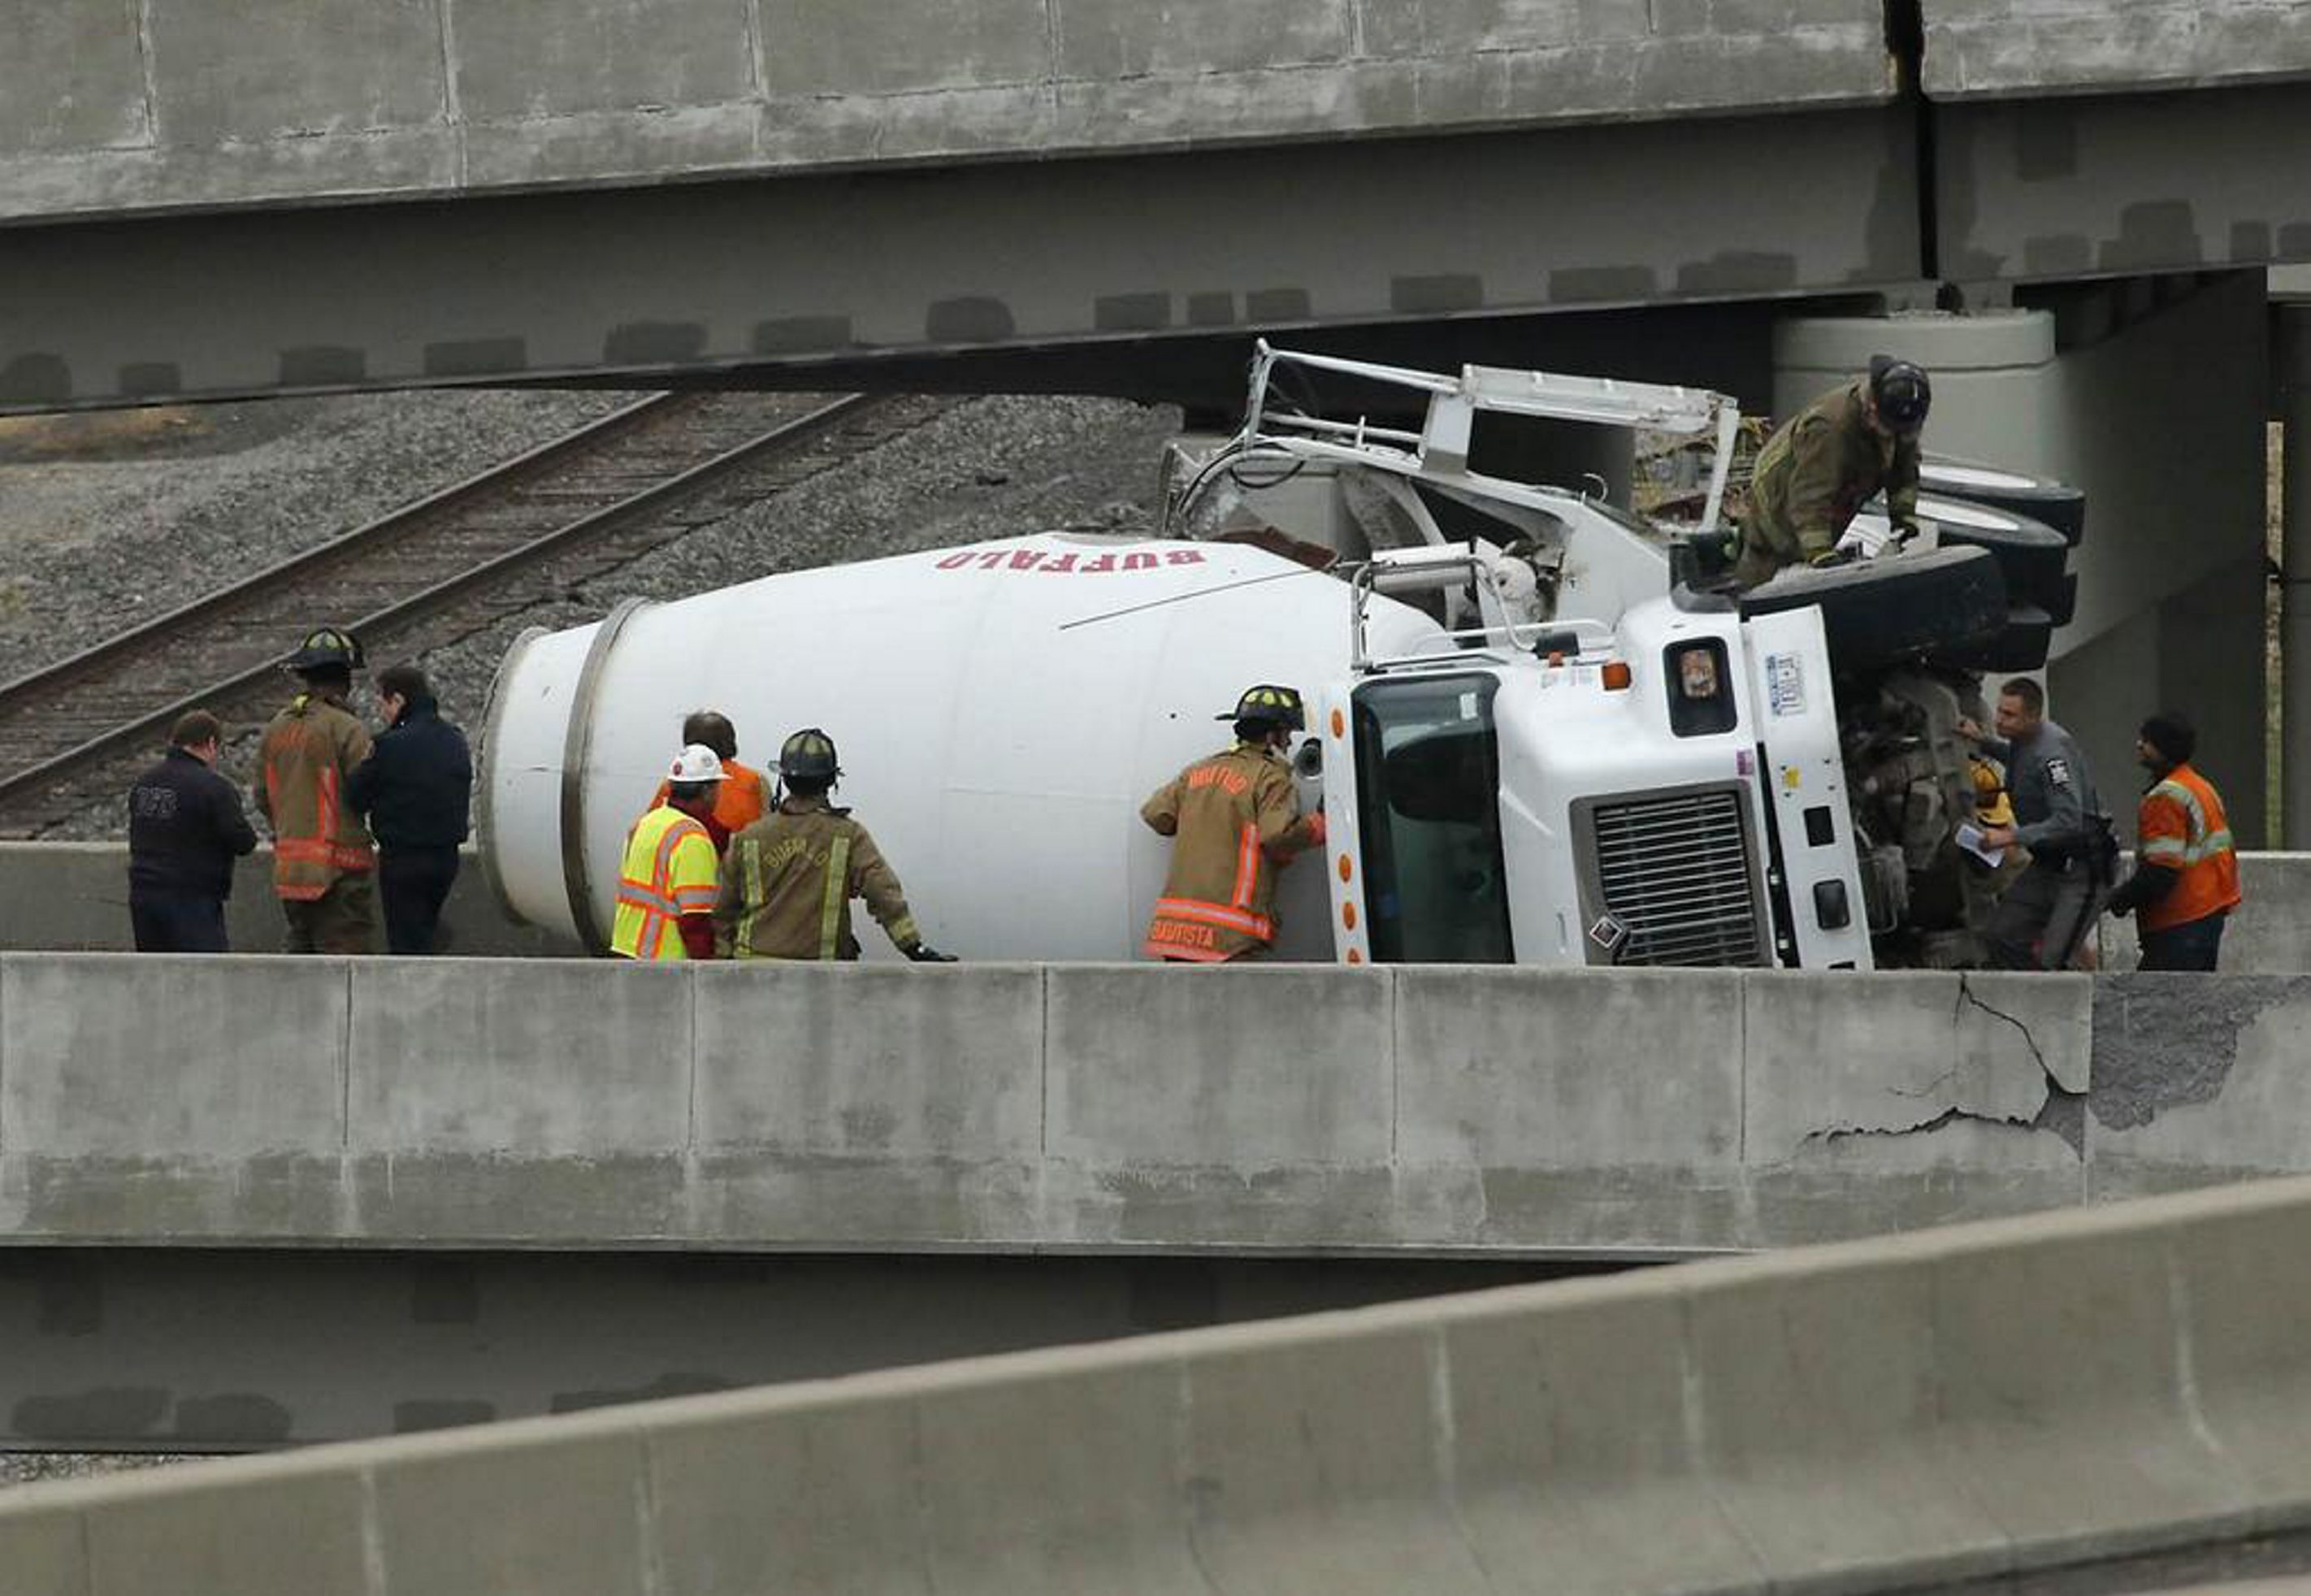 Rescue crews respond to a cement truck that rolled over on the Elm Street exit from the I-190 south, Wednesday, Oct. 29, 2014. (Derek Gee/Buffalo News)